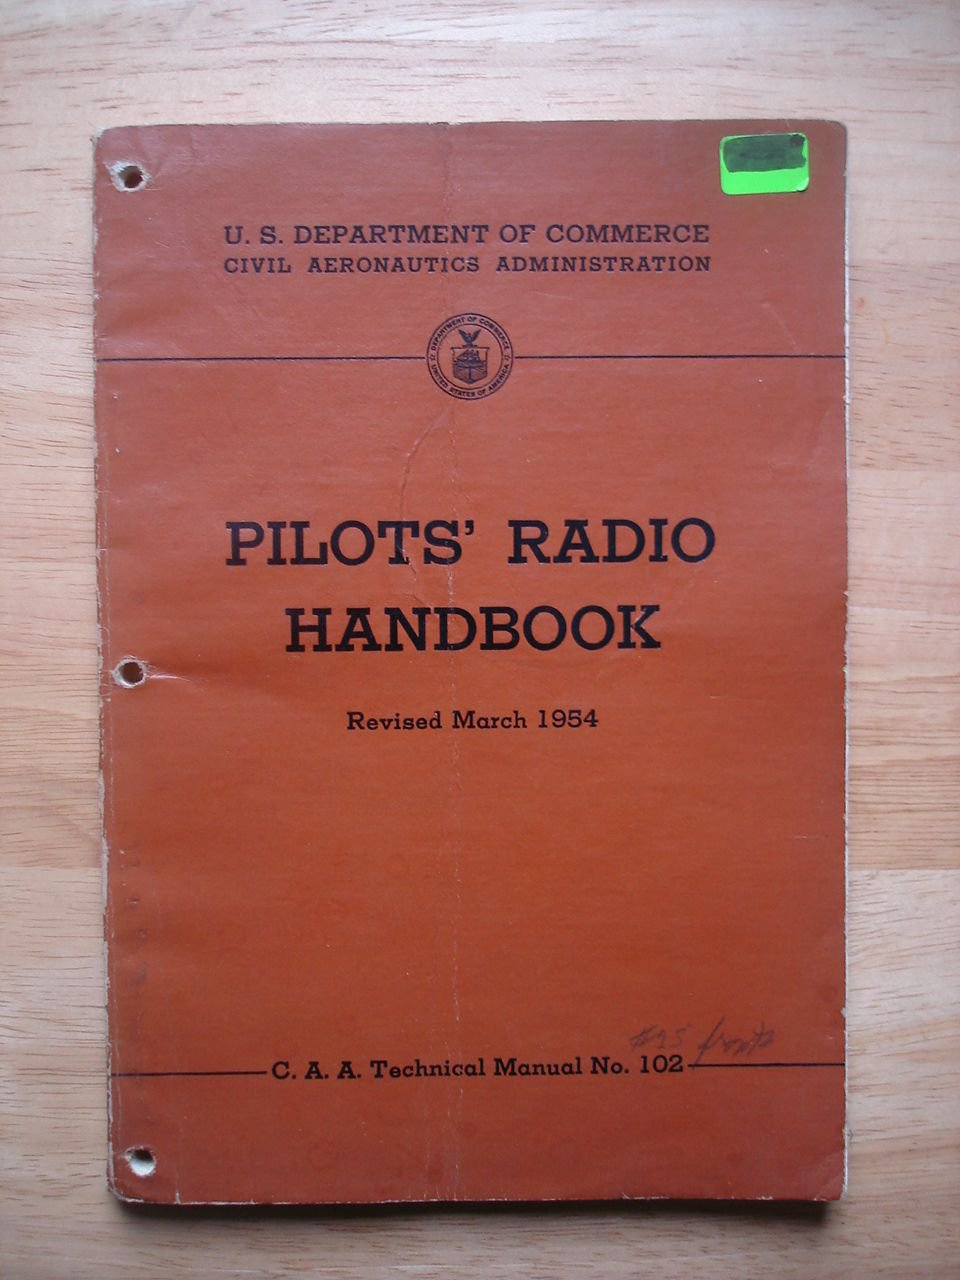 Pilots' Radio Handbook C.A.A. Technical Manual # 102 Revised March 1954